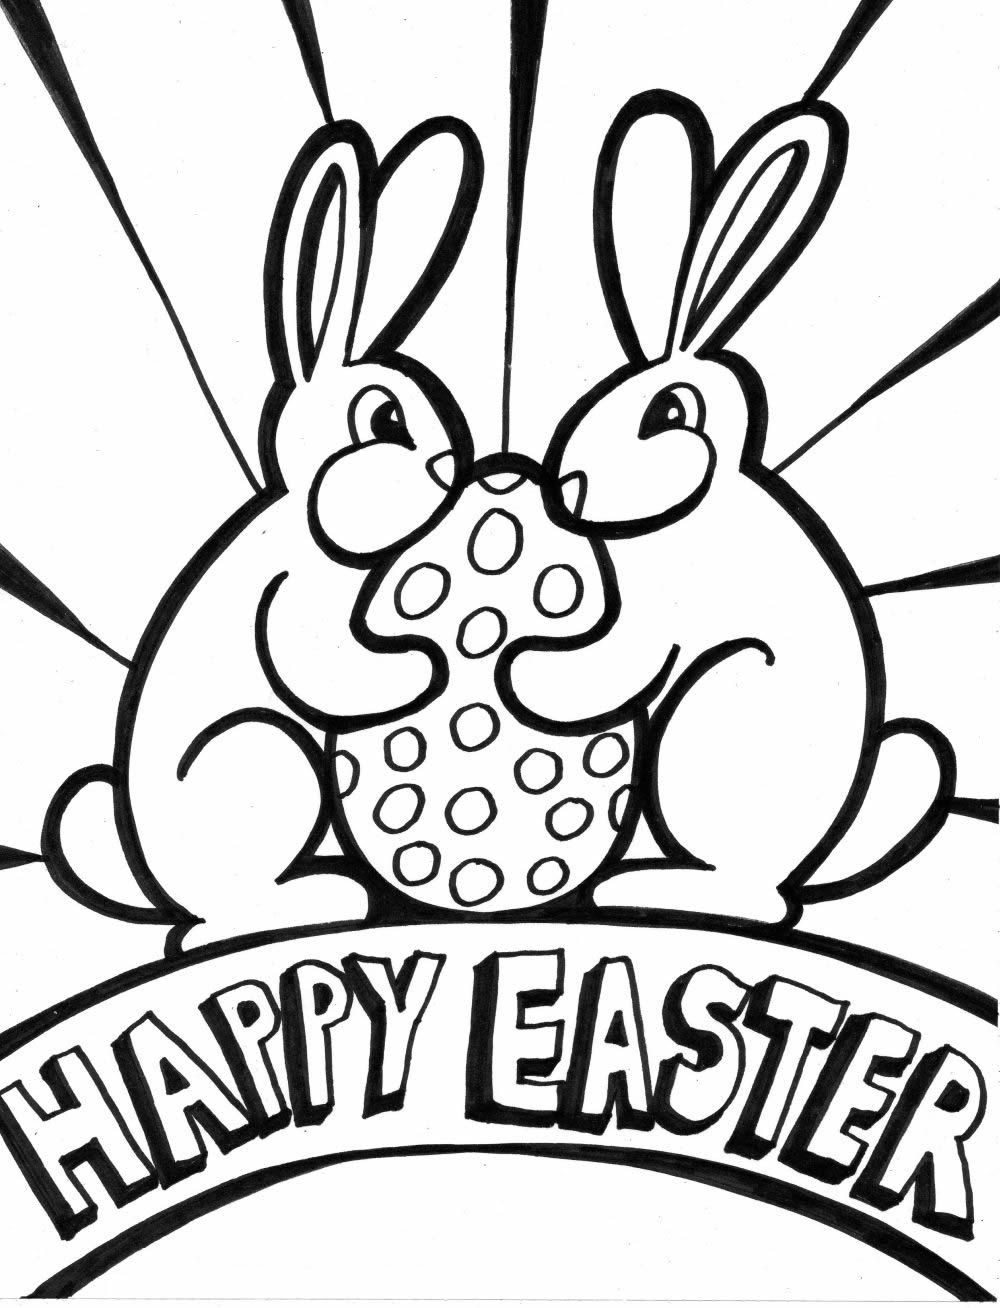 Pin by Ftima on Moldes e riscos II Pinterest Easter colouring